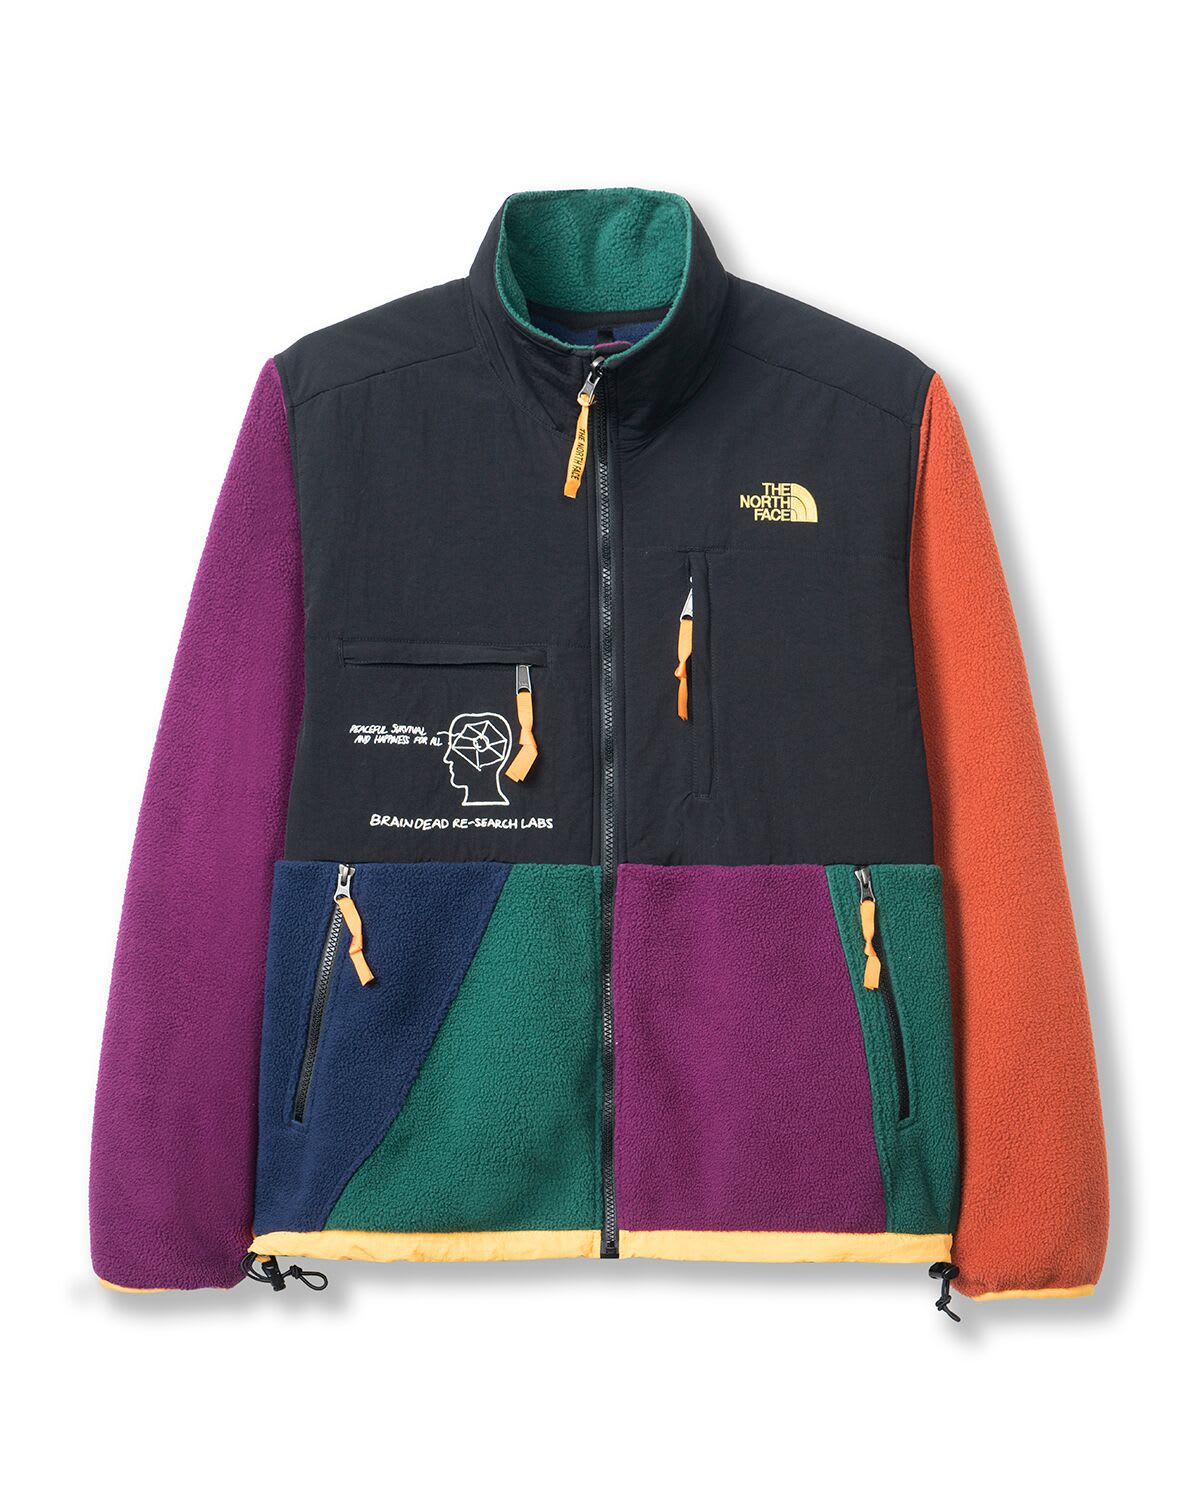 The North Face x Brain Dead Denali Fleece